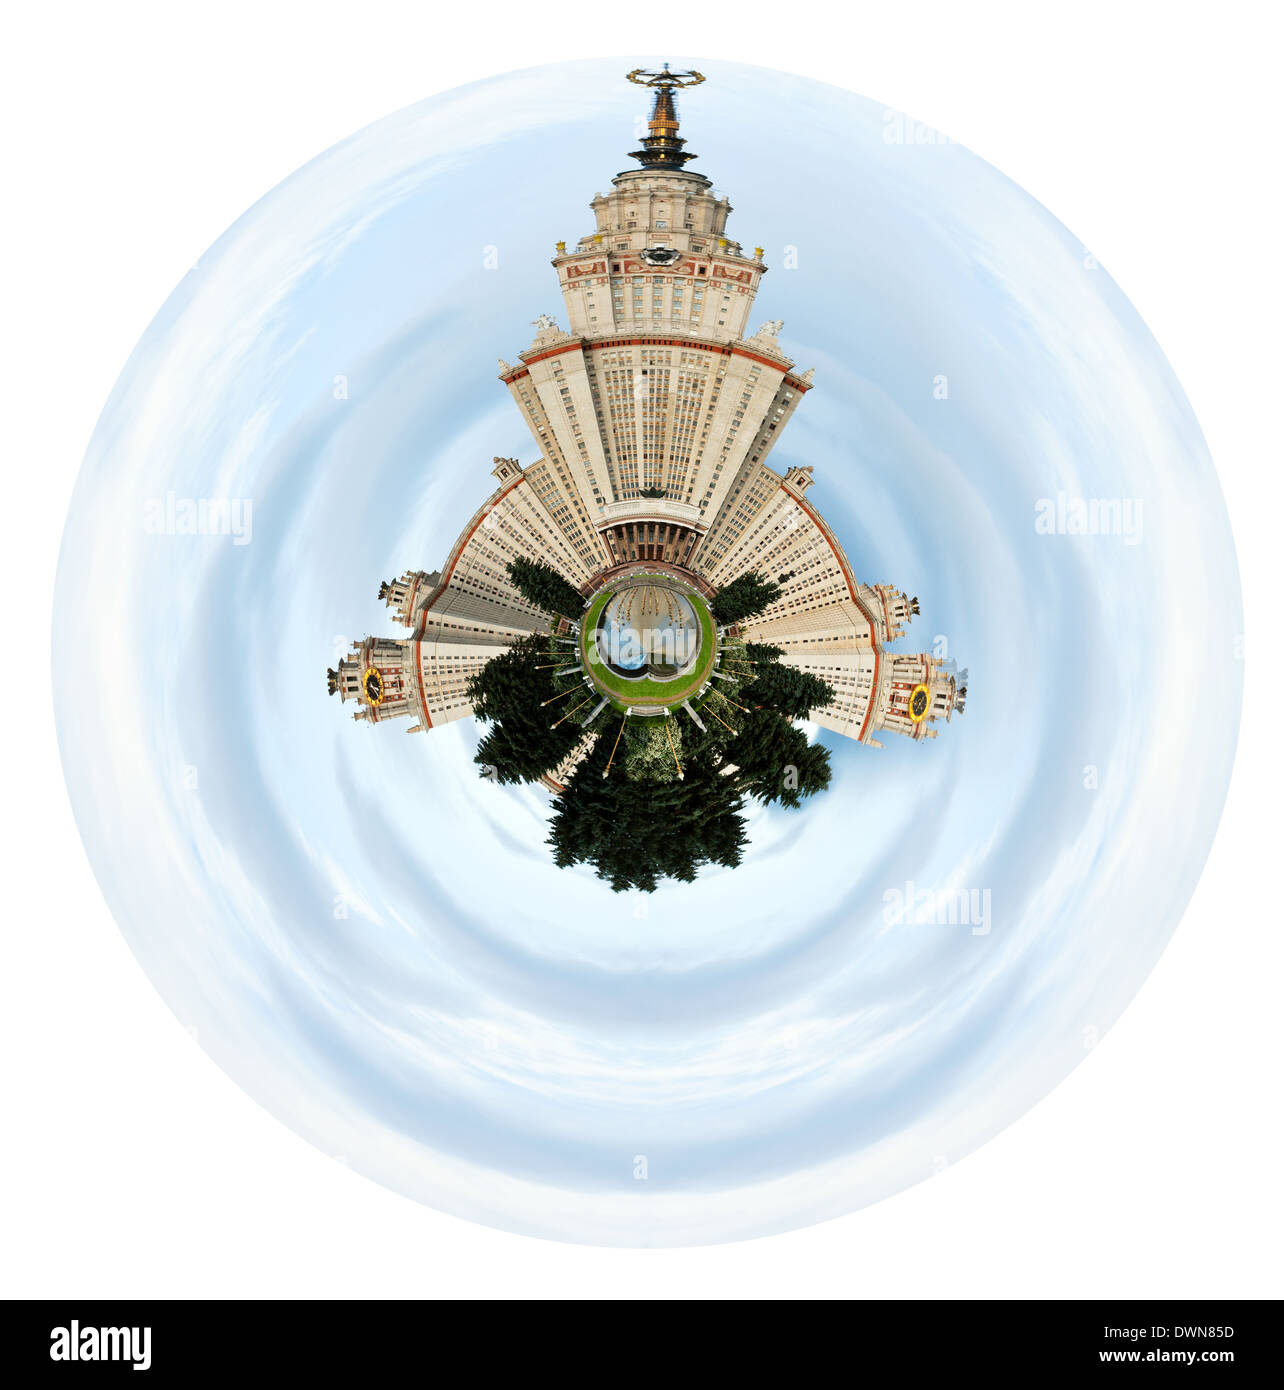 little planet - spherical view of Lomonosov Moscow State University and fountain pond under cloudy sky - Stock Image